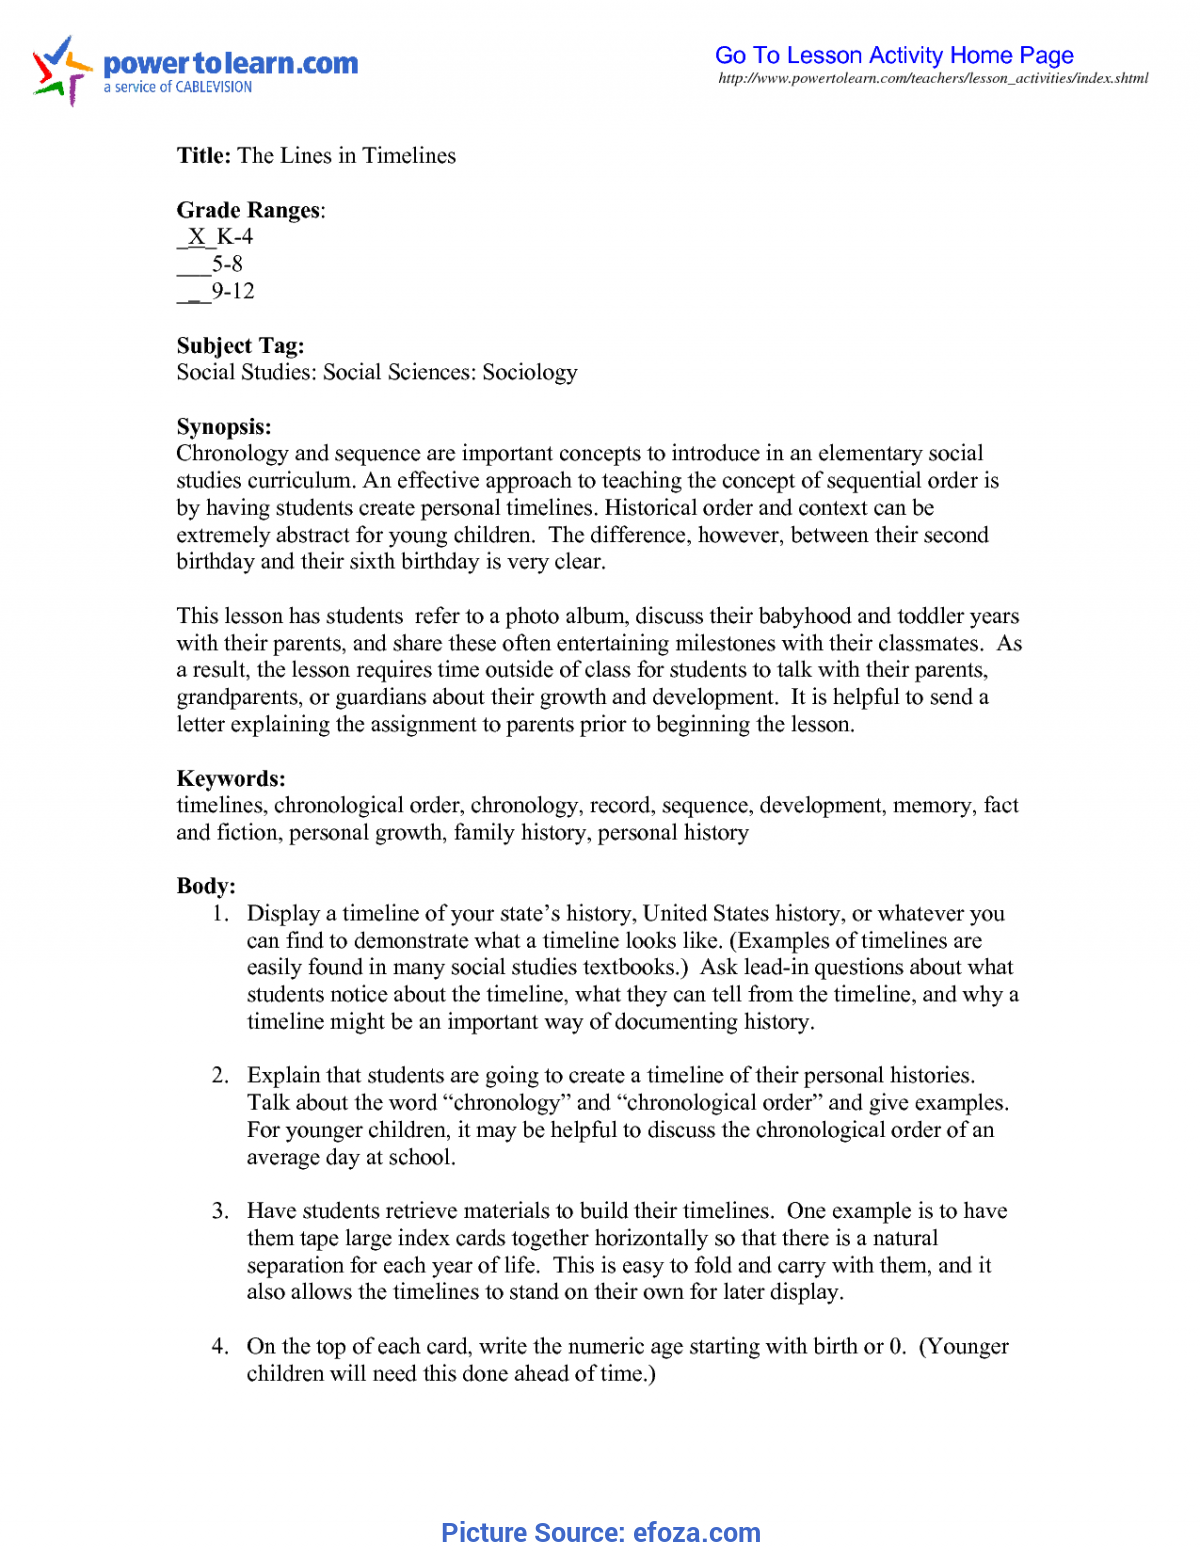 Typical Unit Plans For Elementary 11 Best Images Of Lesson Plan Examples For Elementary - Sampl